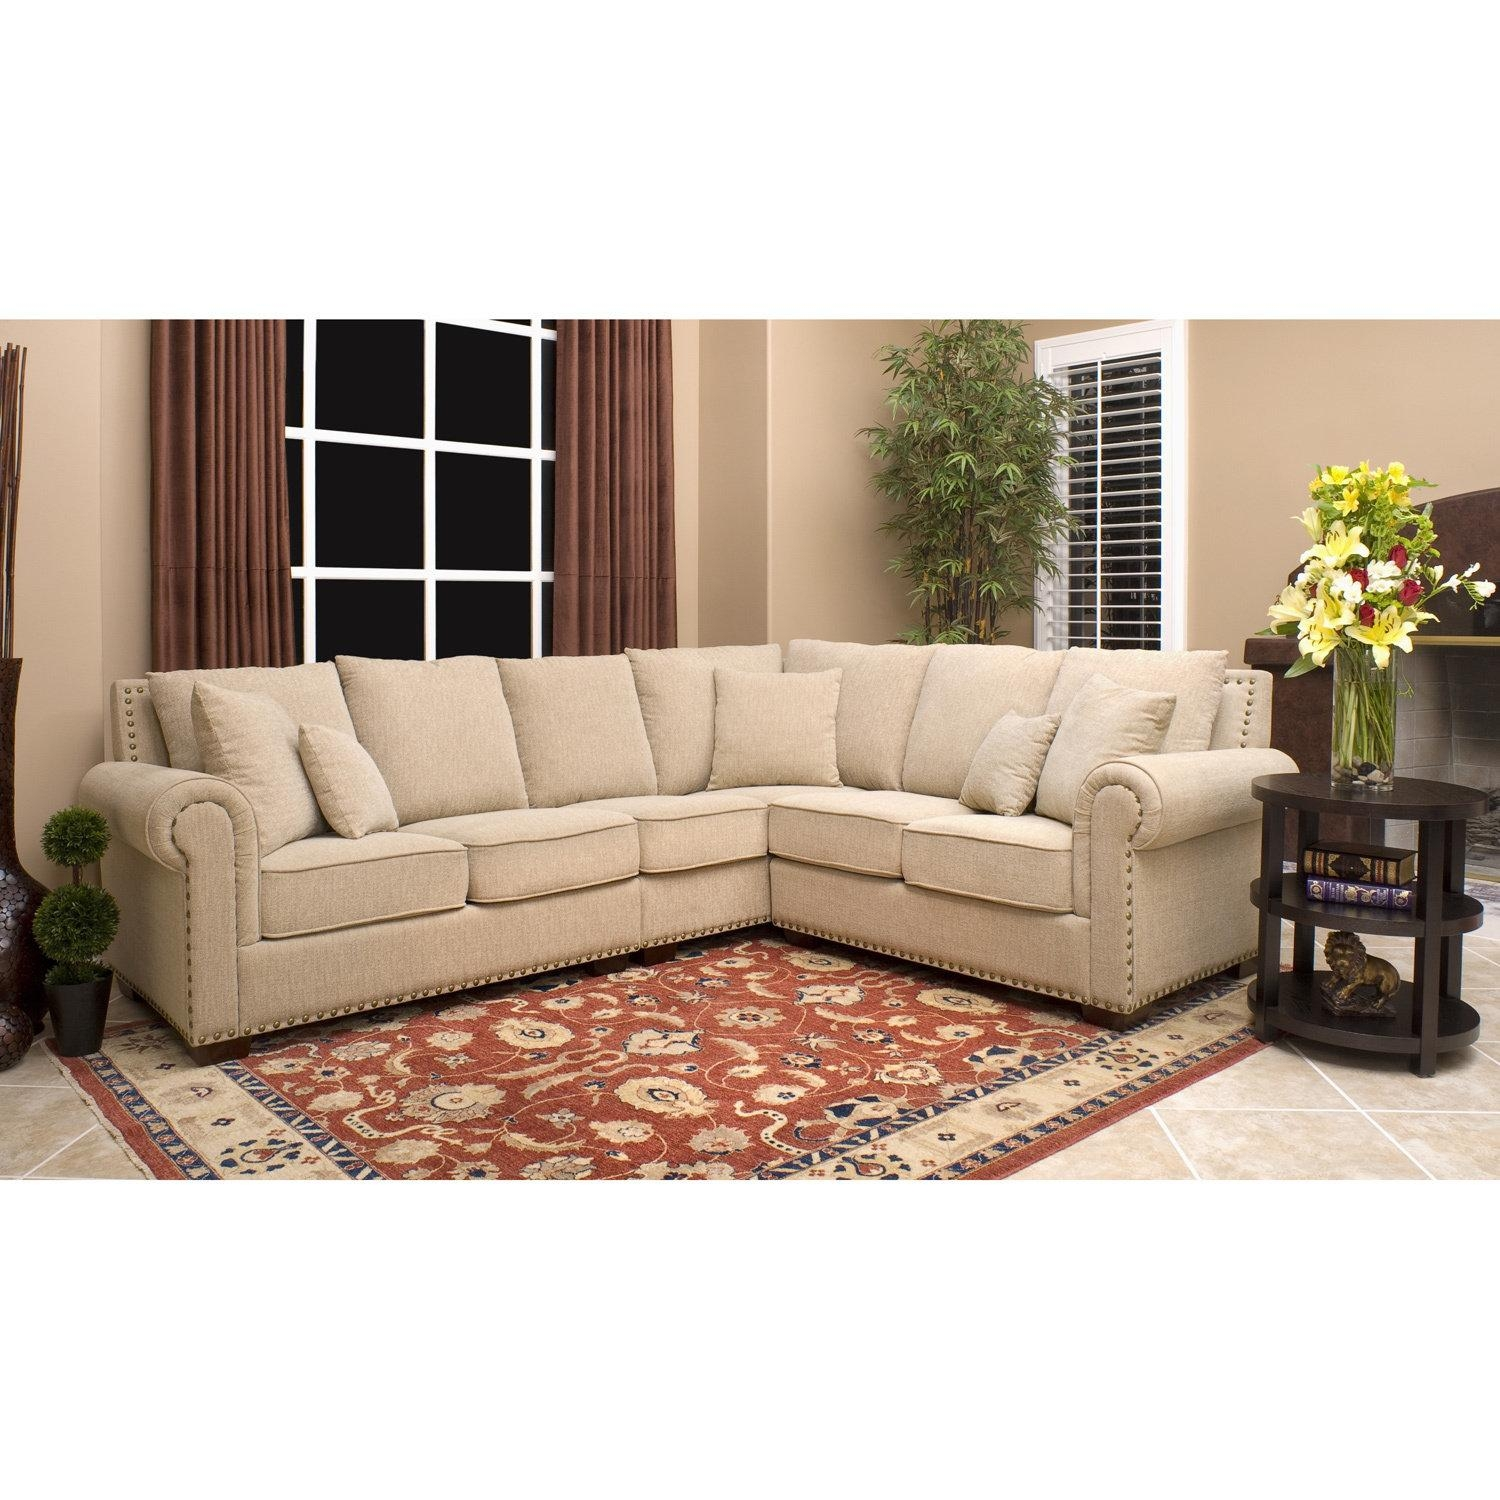 Sofas Loveseats Archives – Best Furniture Your Choices Pertaining To Abbyson Living Sectional (Image 15 of 15)